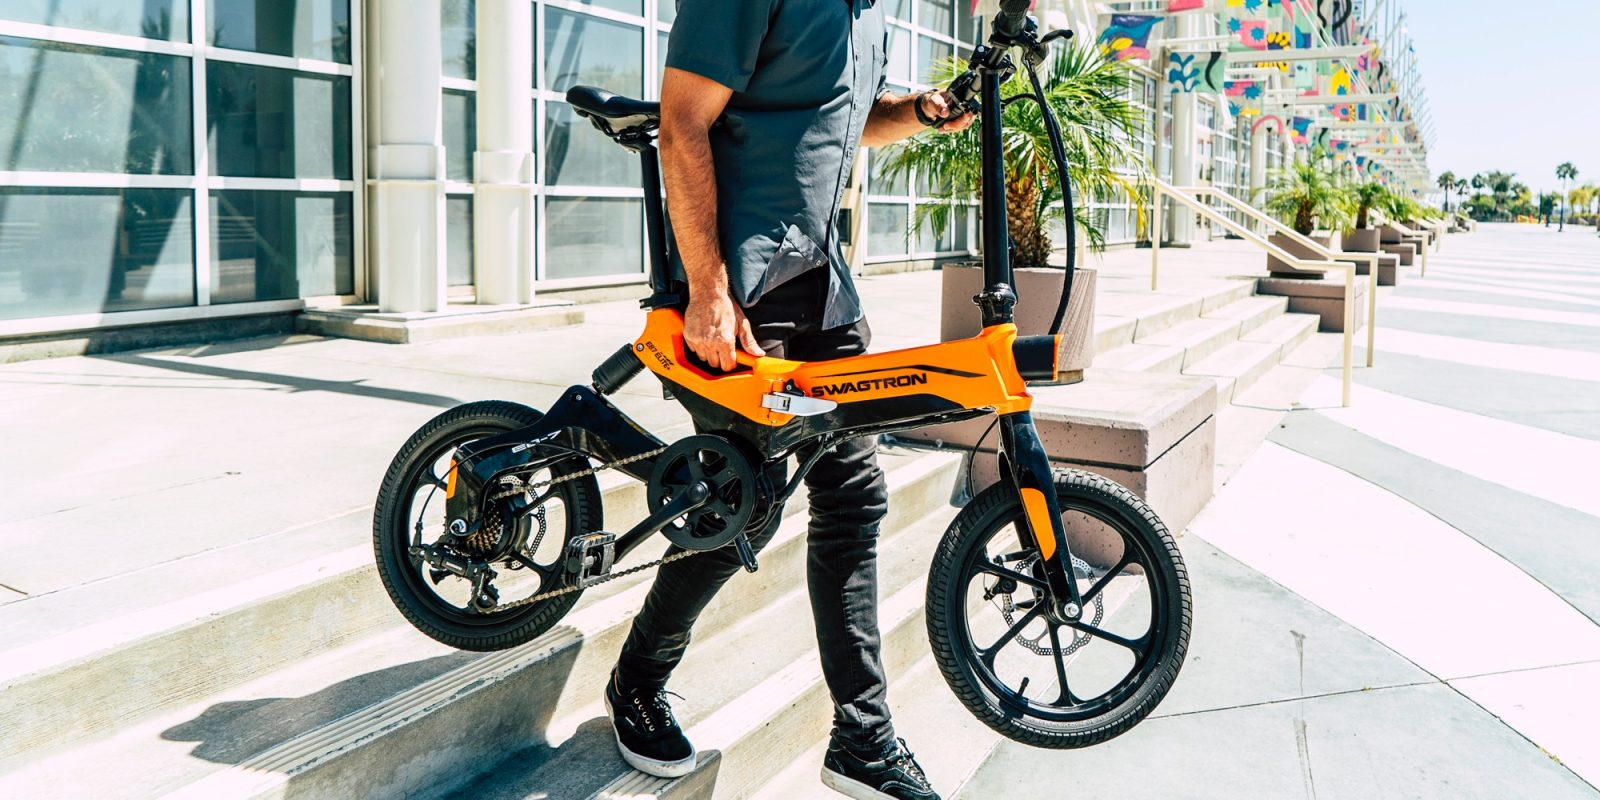 Swagtron's popular $599 electric bicycle just got even better